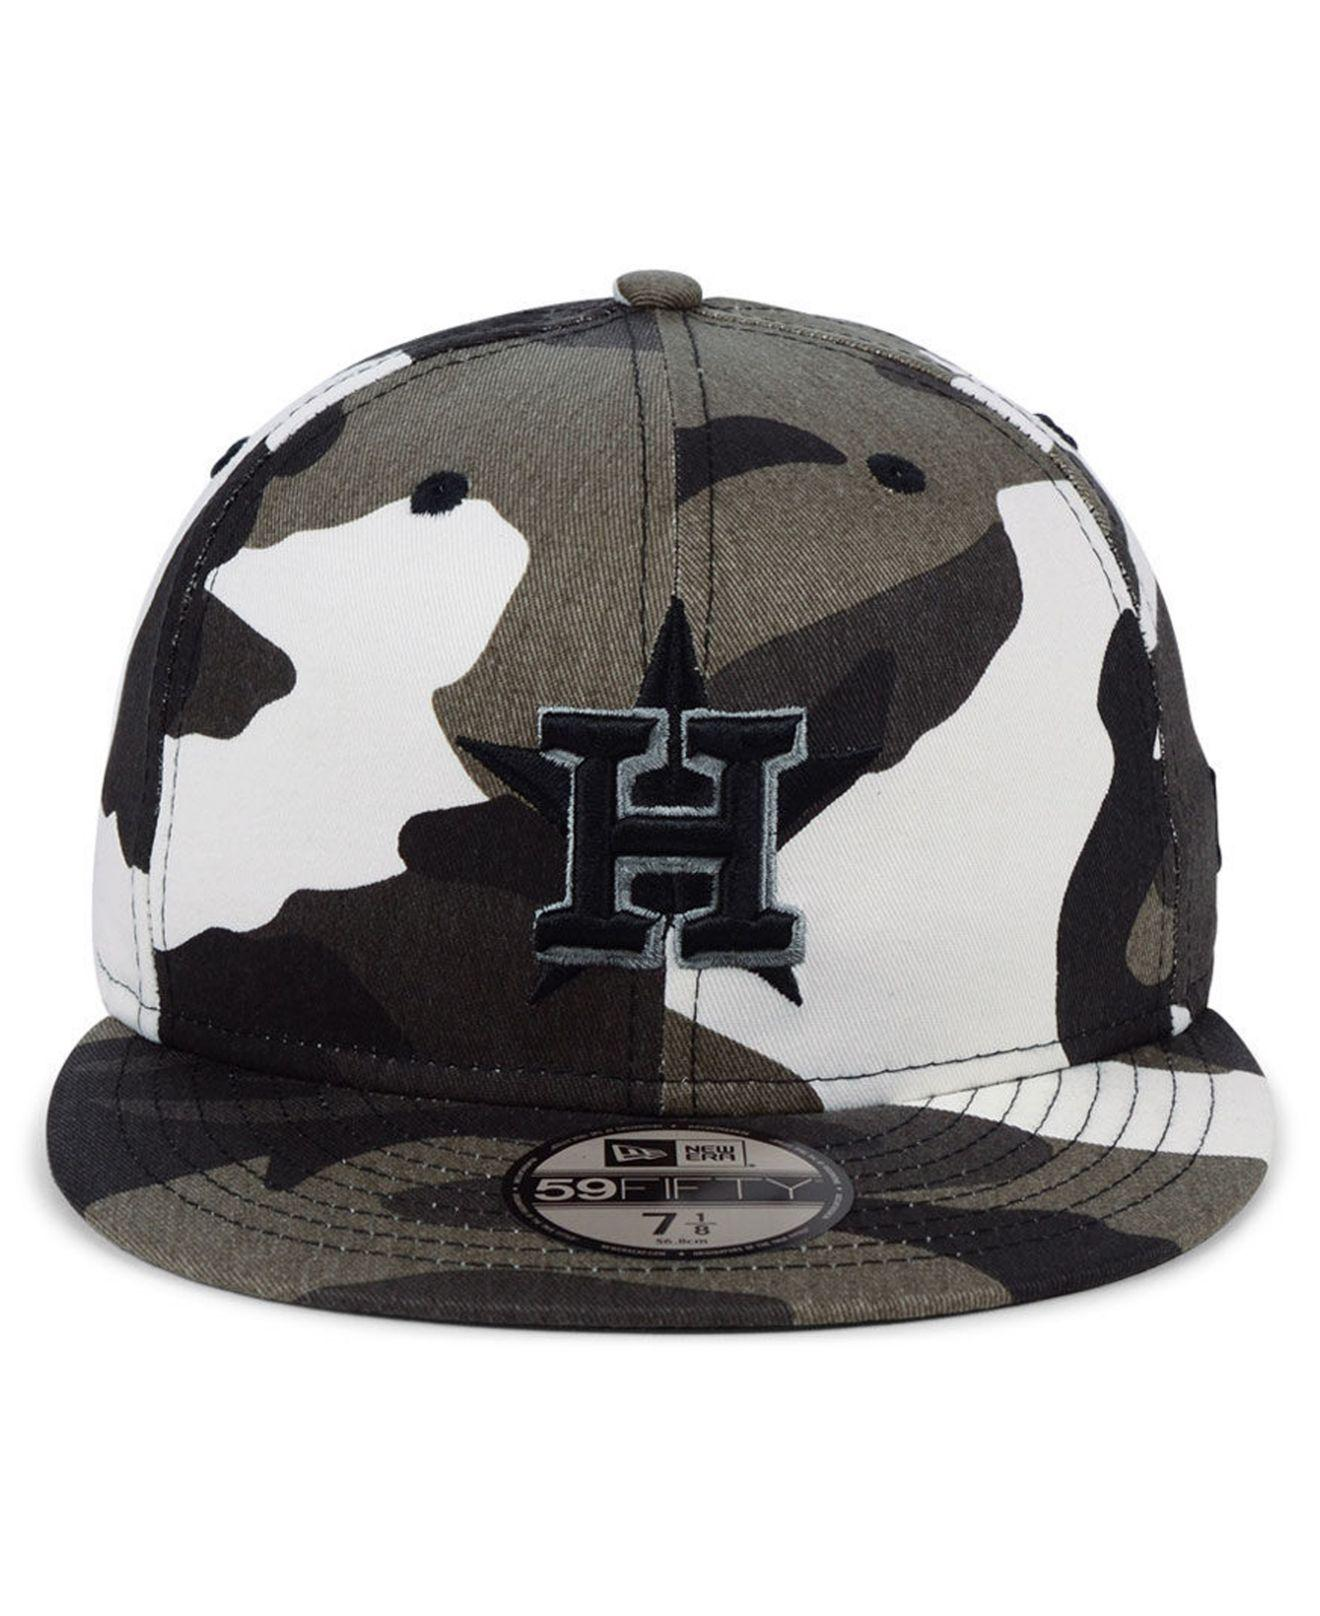 new style e25d3 a1101 ... wholesale lyst ktz houston astros fall prism pack 59fifty fitted cap in  black for men 9e10e